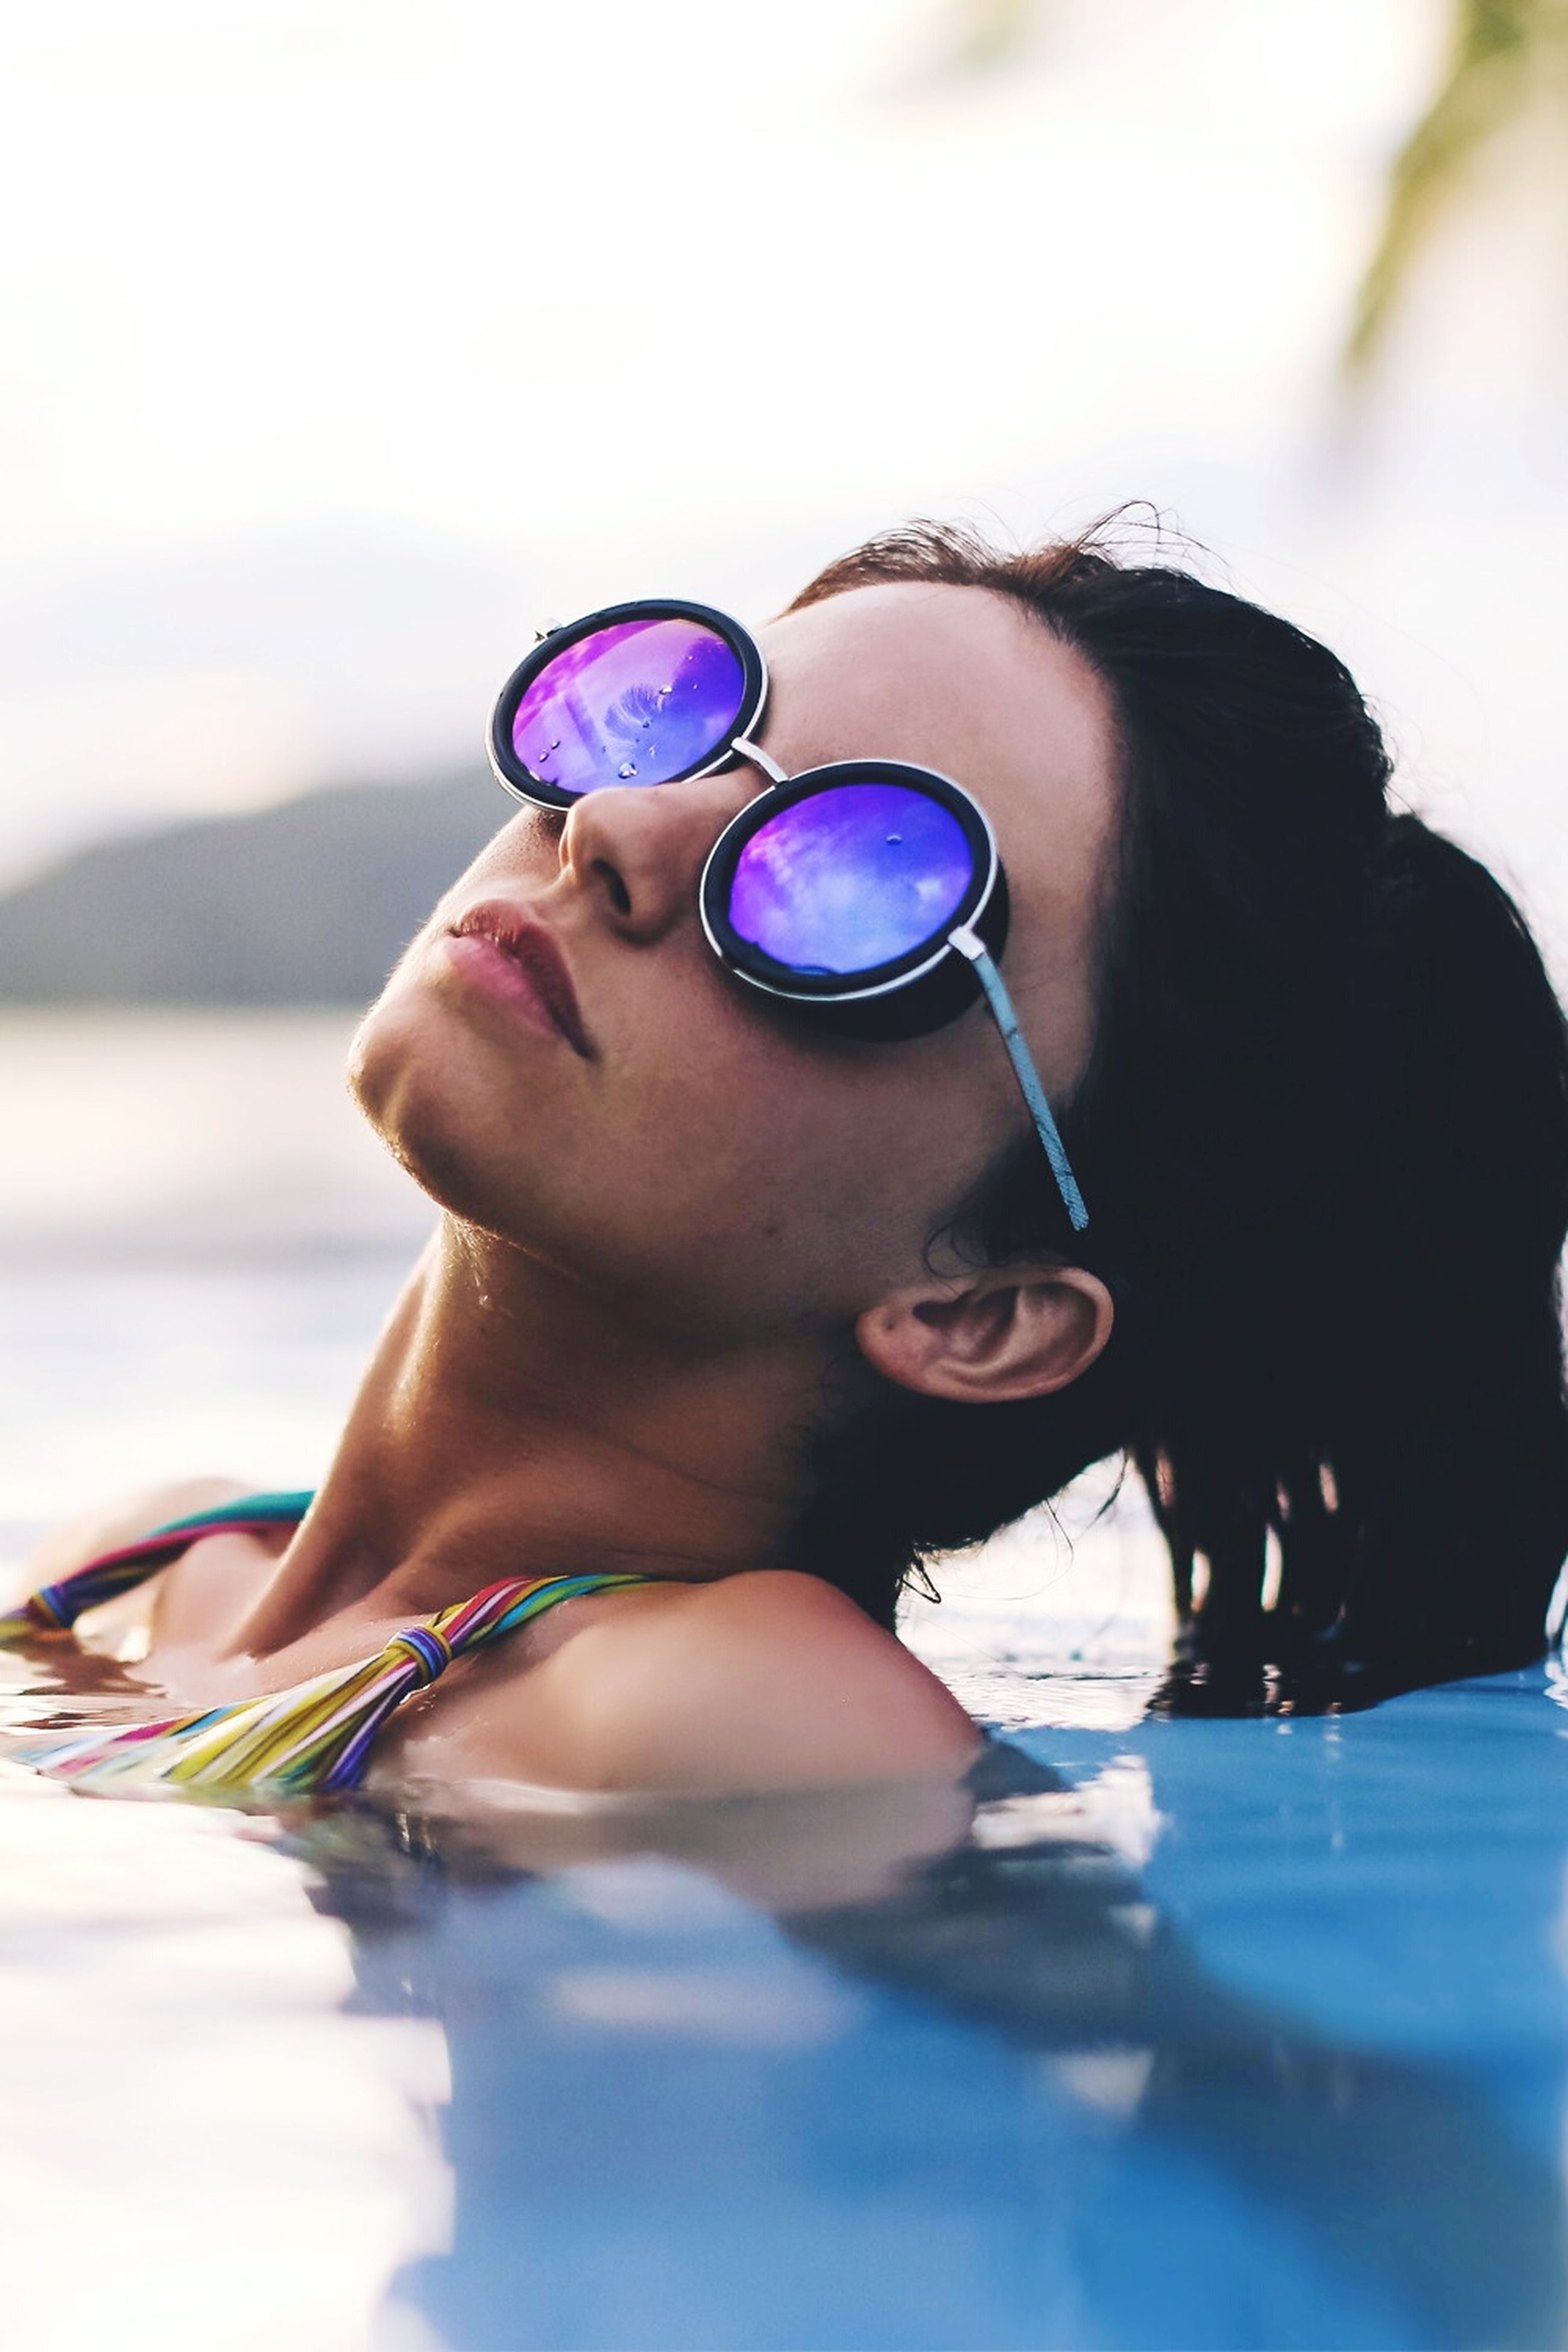 lifestyles, leisure activity, sunglasses, focus on foreground, water, close-up, headshot, childhood, person, reflection, girls, beach, young adult, young women, front view, holding, sunlight